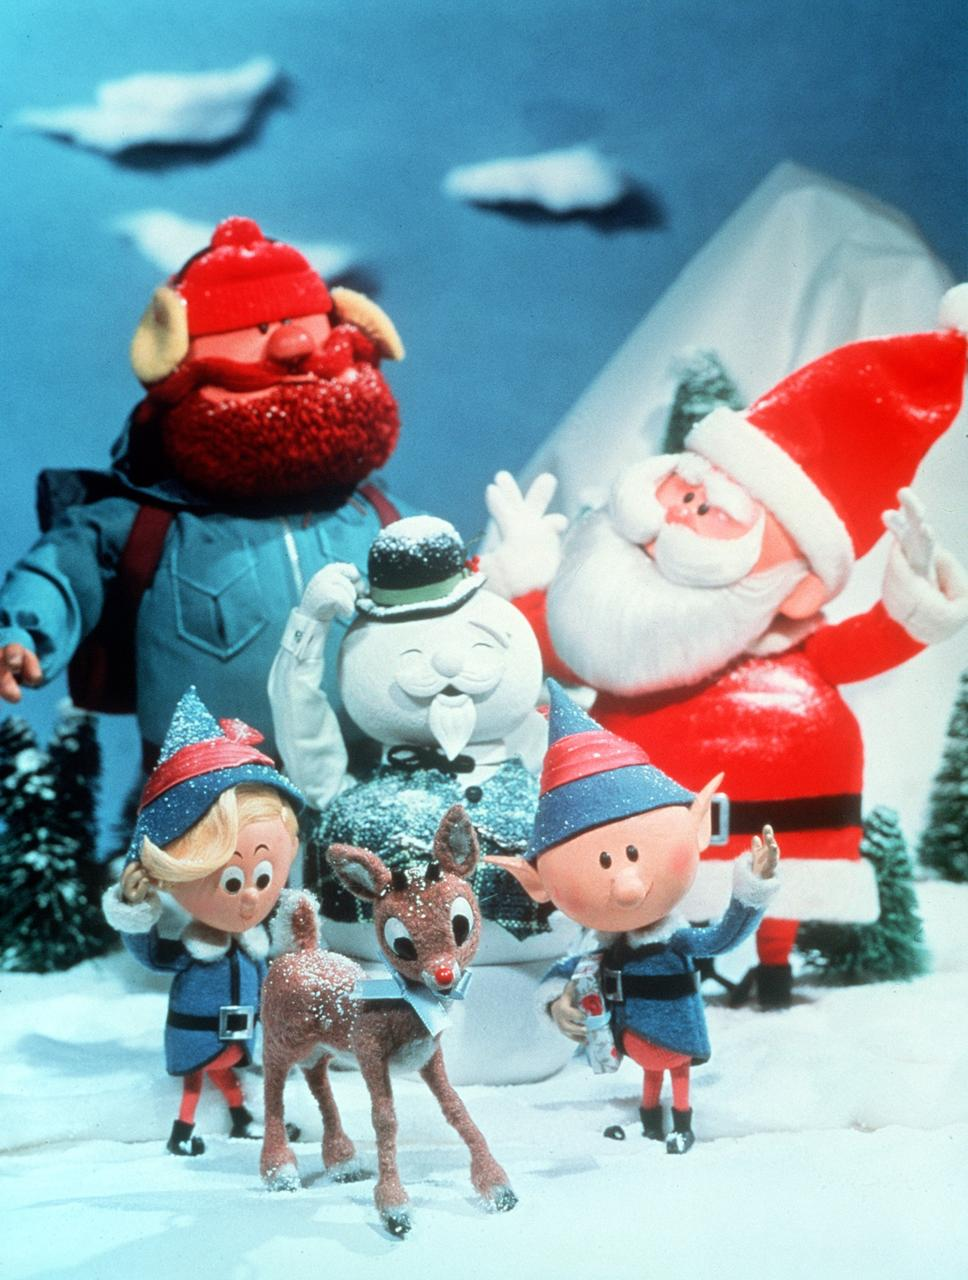 2976440-rudolph-the-red-nosed-reindeer_9cdcf5